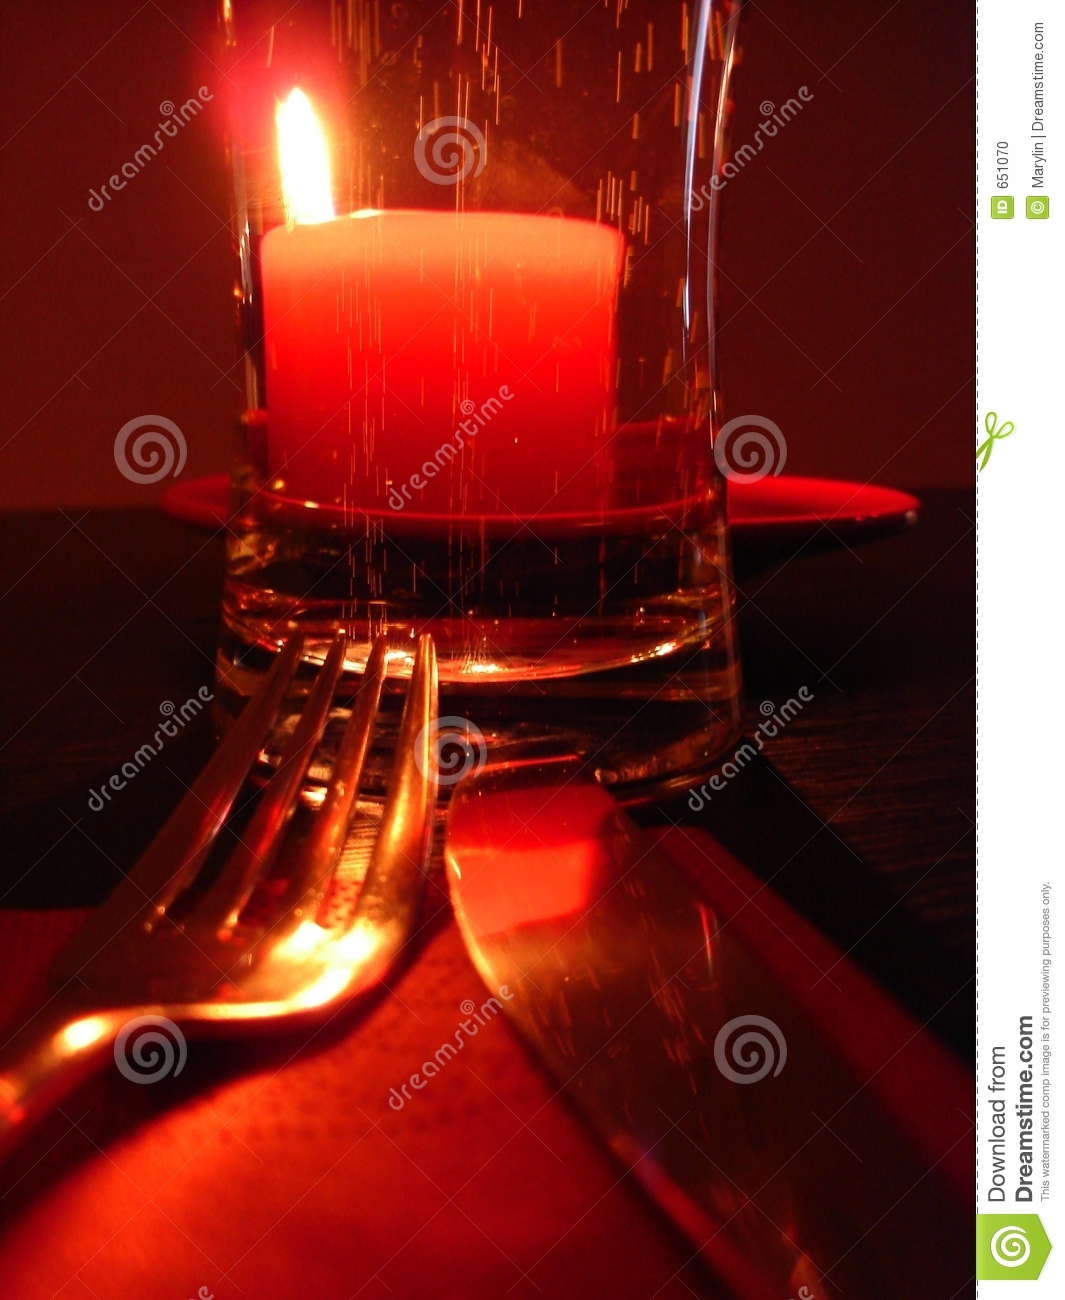 Red Mood Stock Photo Image 651070